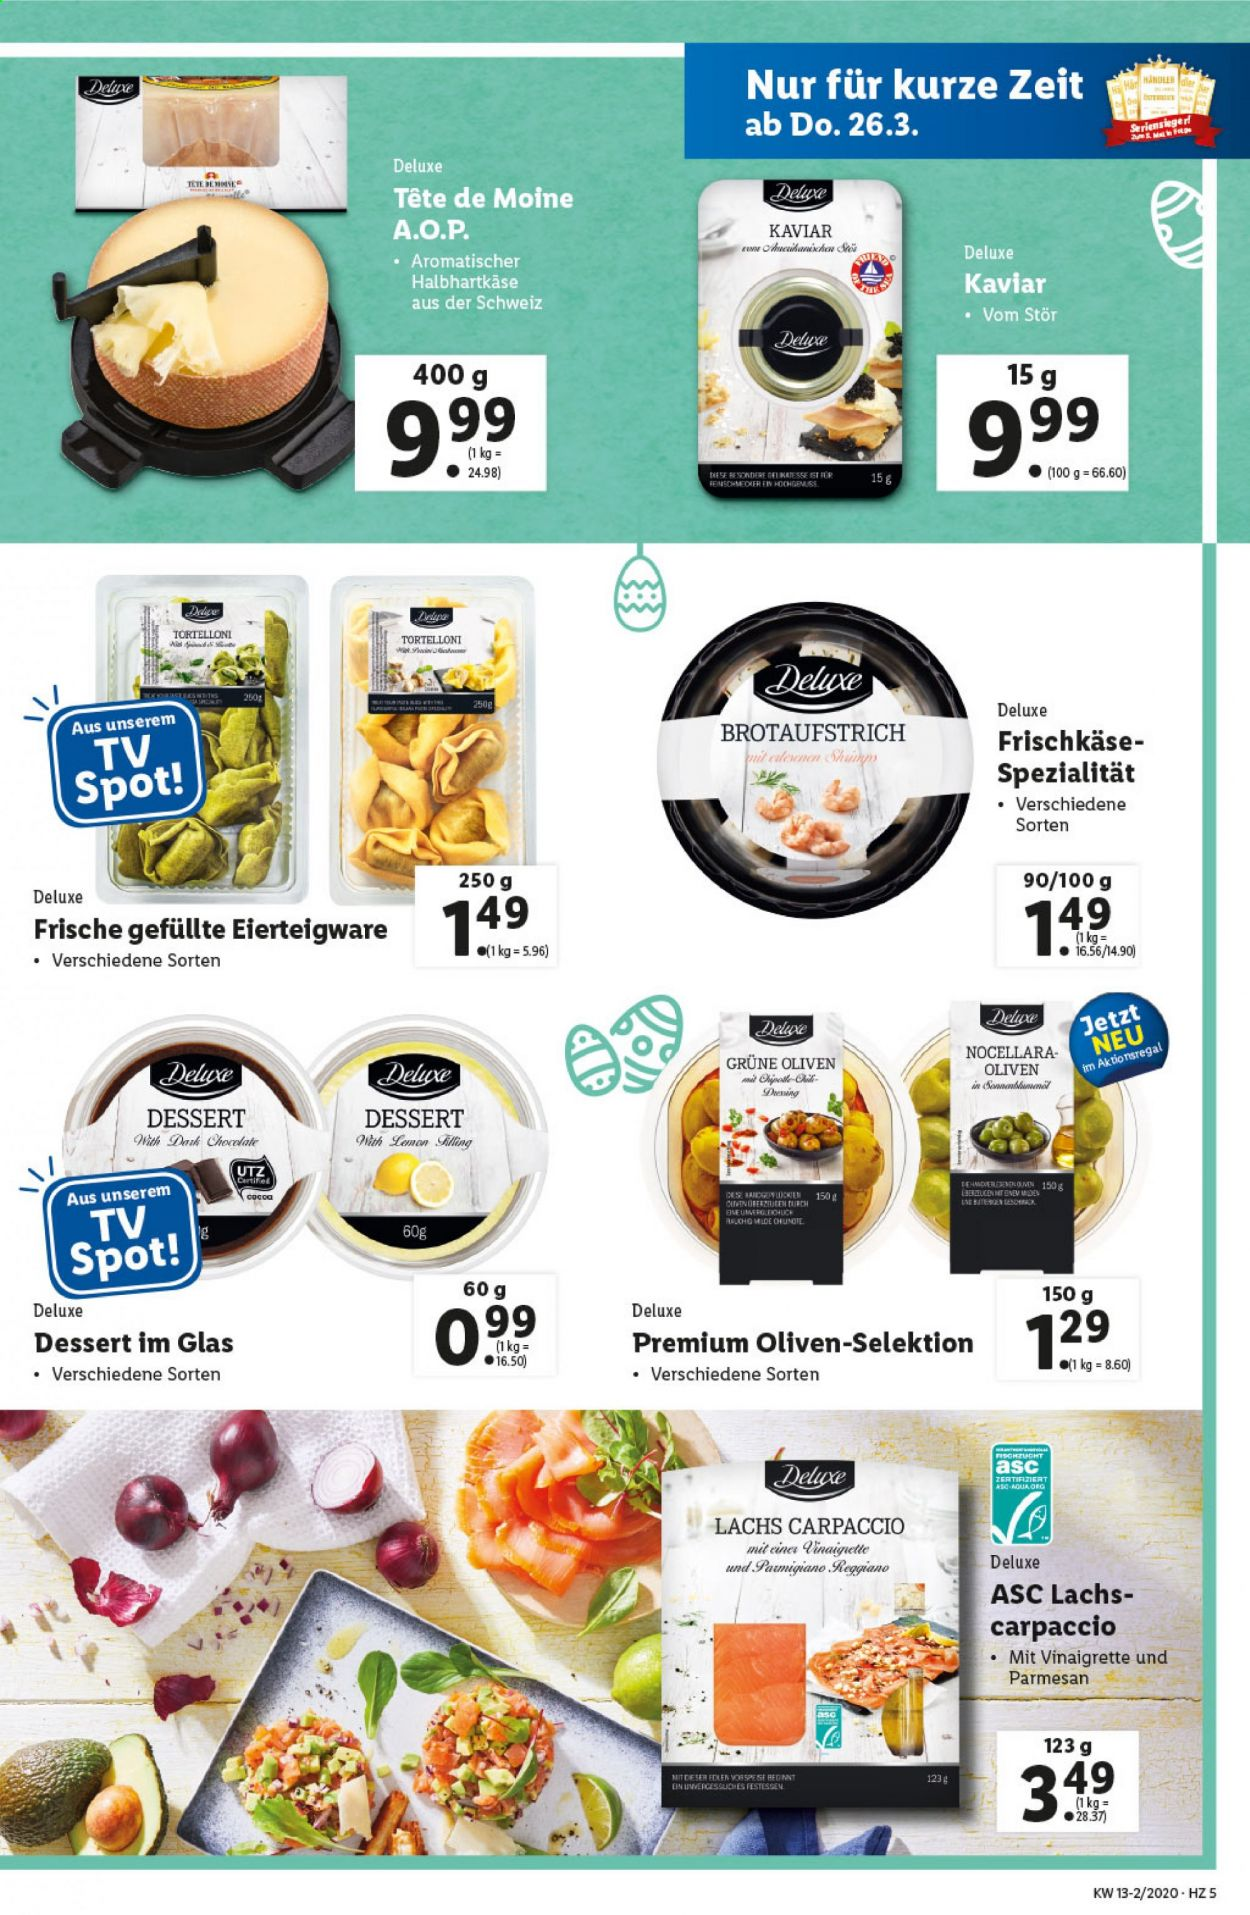 Angebote Lidl - 26.3.2020 - 1.4.2020. Seite 5.